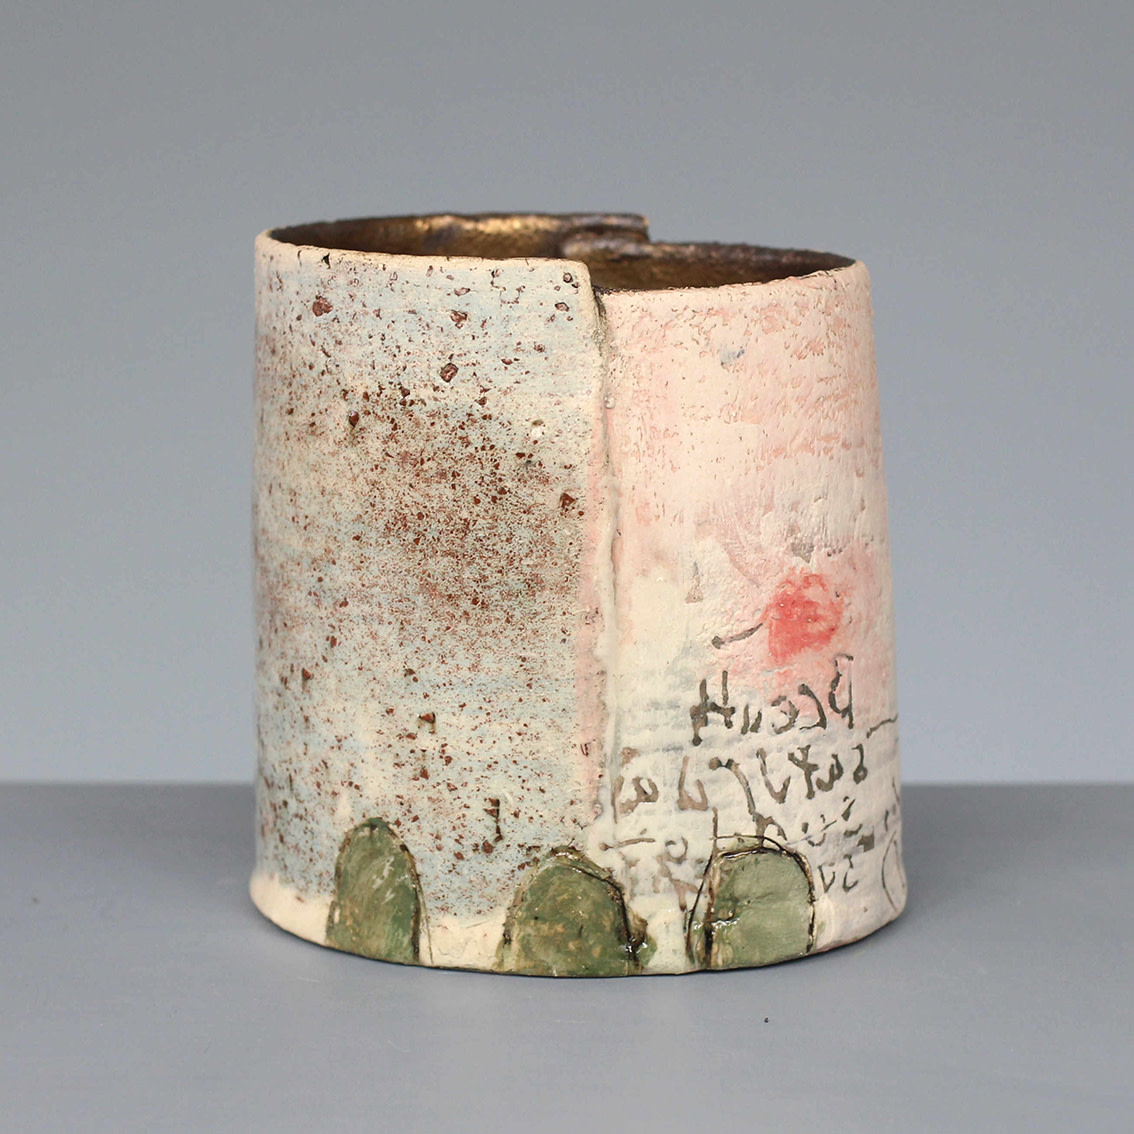 "<span class=""link fancybox-details-link""><a href=""/artists/72-craig-underhill/works/7200-craig-underhill-small-vessel-green-circles-2020/"">View Detail Page</a></span><div class=""artist""><strong>Craig Underhill</strong></div> <div class=""title""><em>Small Vessel – Green Circles</em>, 2020</div> <div class=""signed_and_dated"">signed to base</div> <div class=""medium"">slab-built, engobe layers, slips & glazes</div> <div class=""dimensions"">h 11.5cm</div><div class=""price"">£140.00</div><div class=""copyright_line"">Own Art: £ 14 x 10 Months, 0% APR</div>"